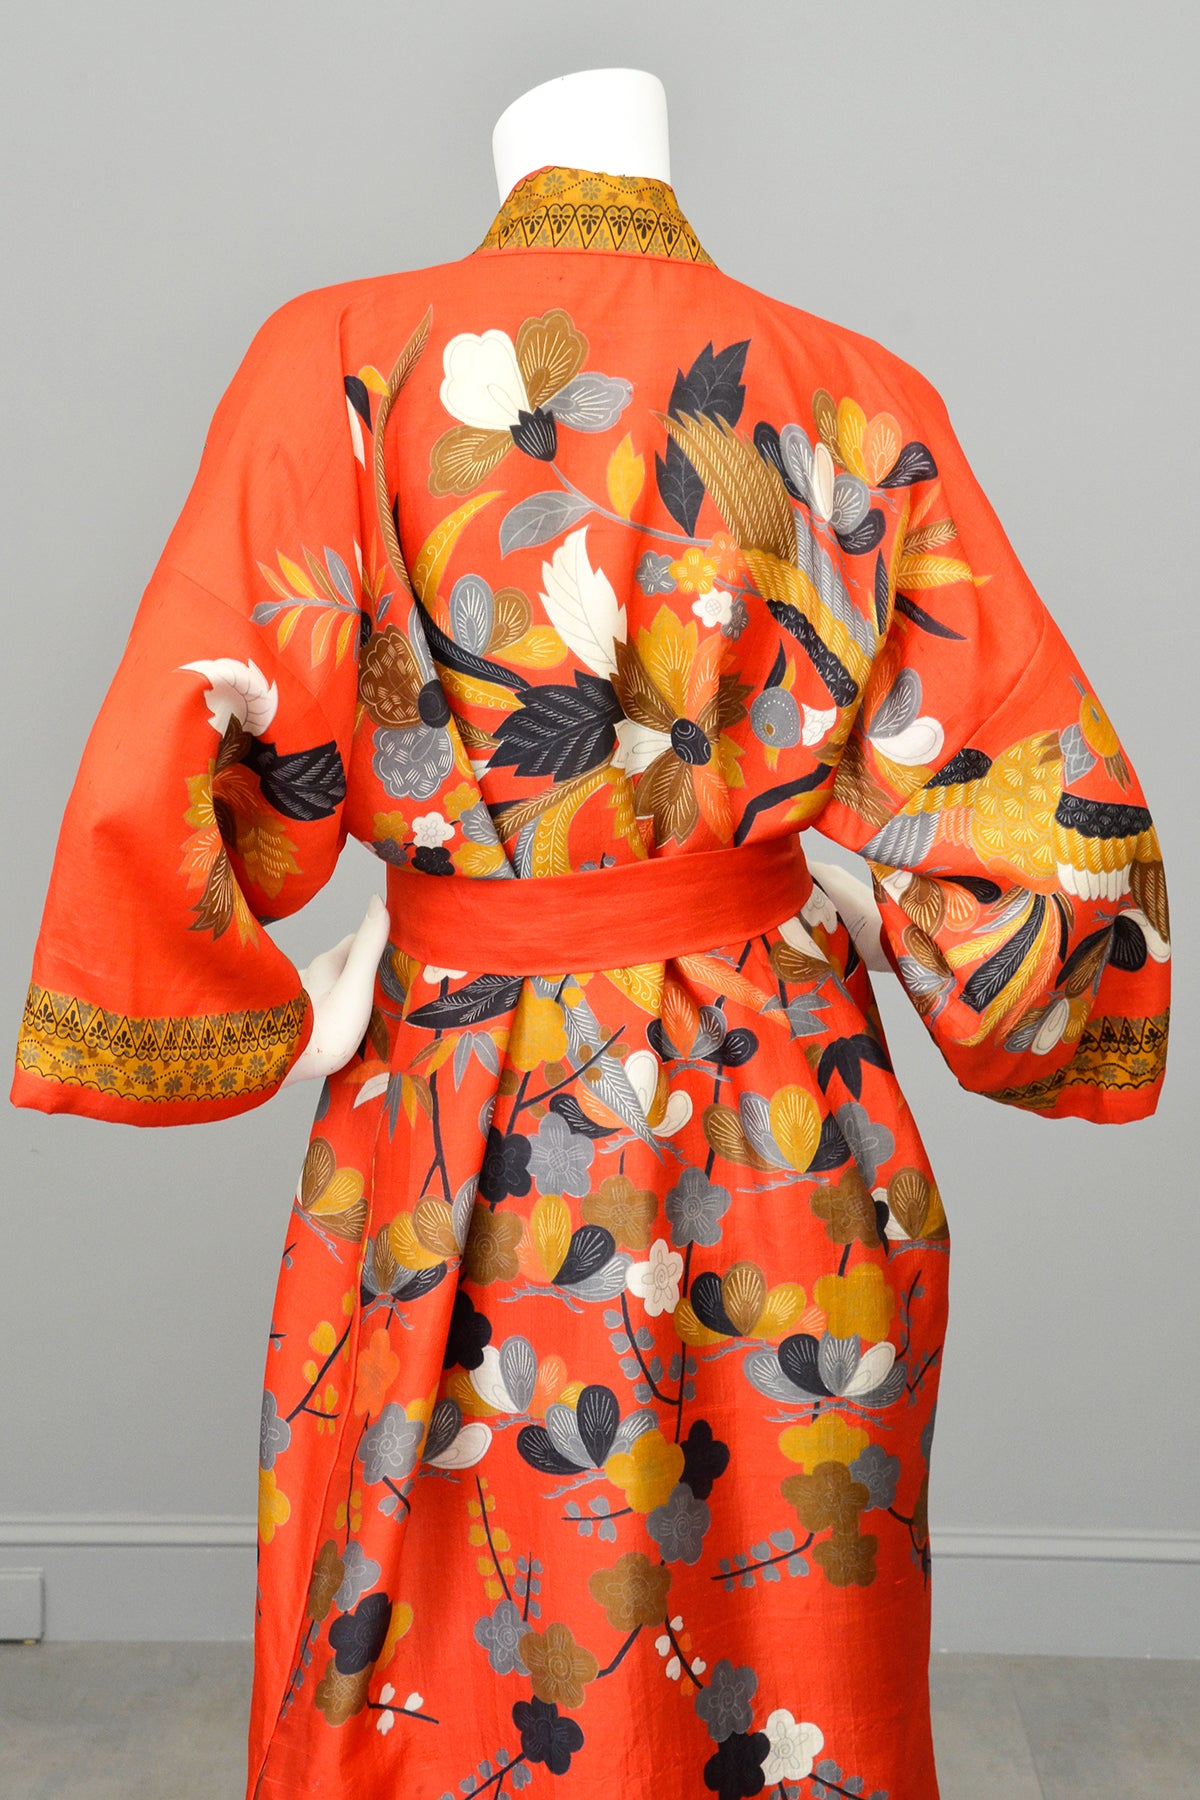 Vintage Flapper style Japanese Kimono Vibrant Red Gold Floral + Birds